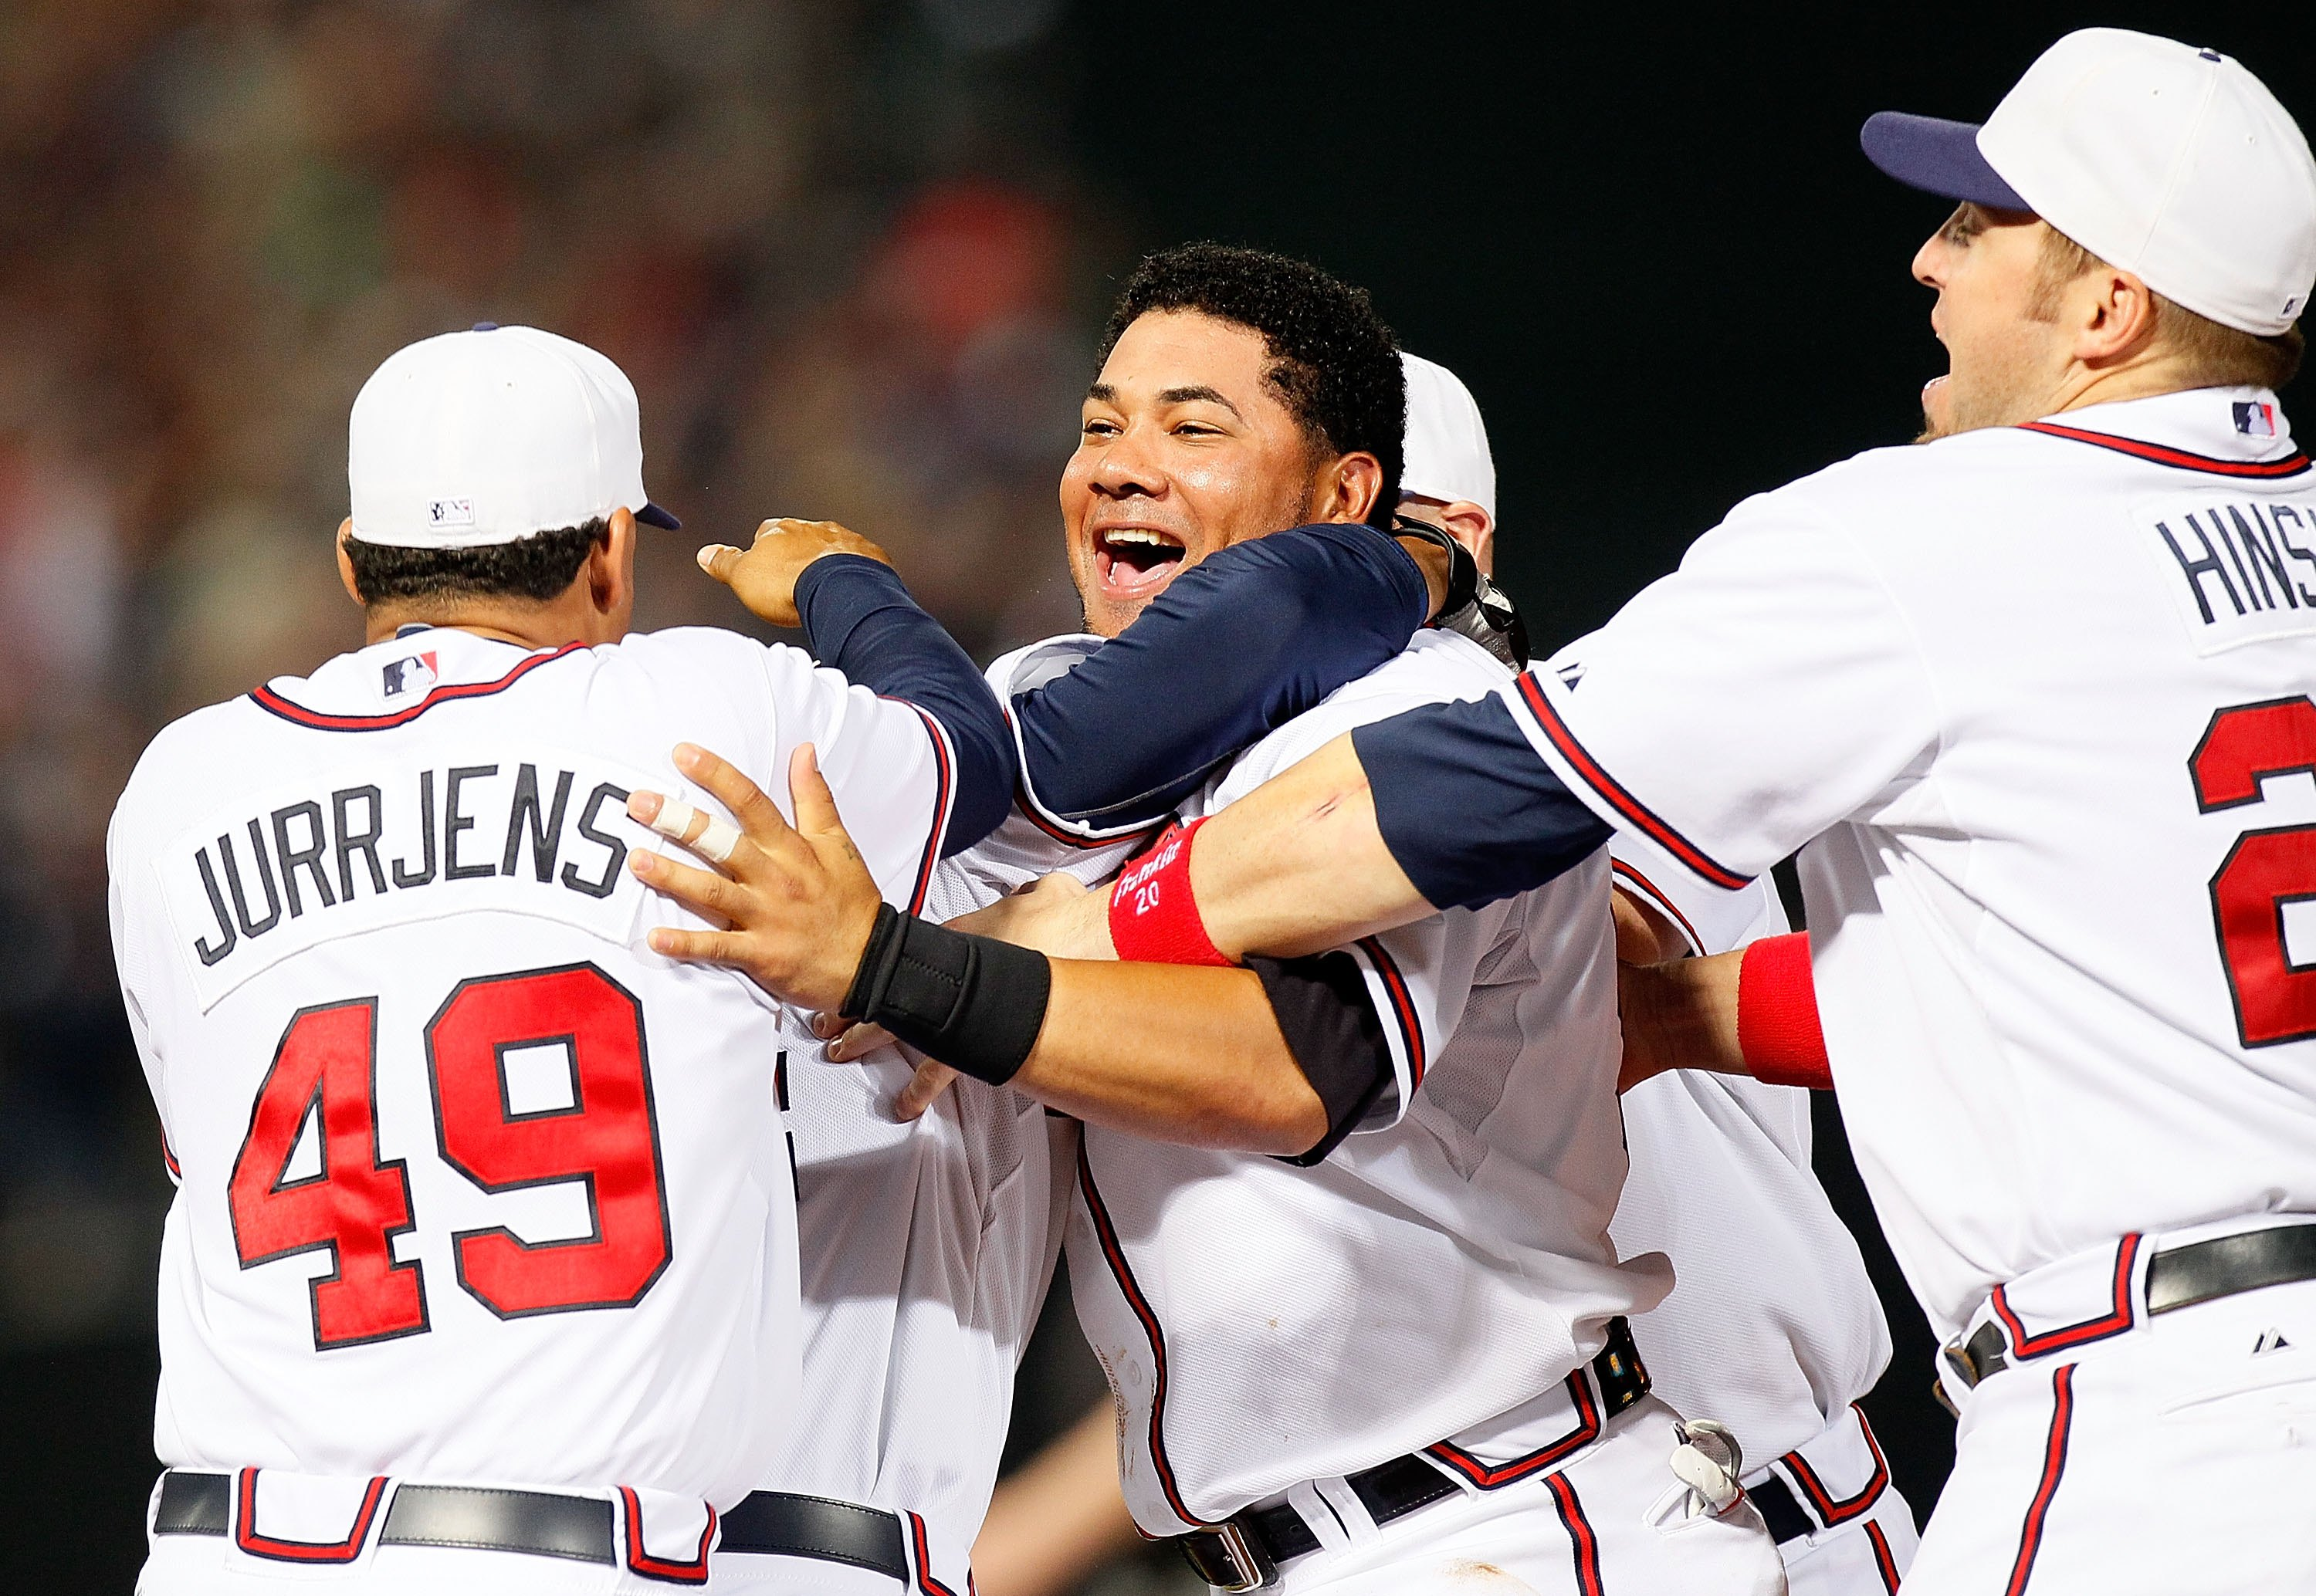 The Atlanta Braves will look to return to dominance in 2011.